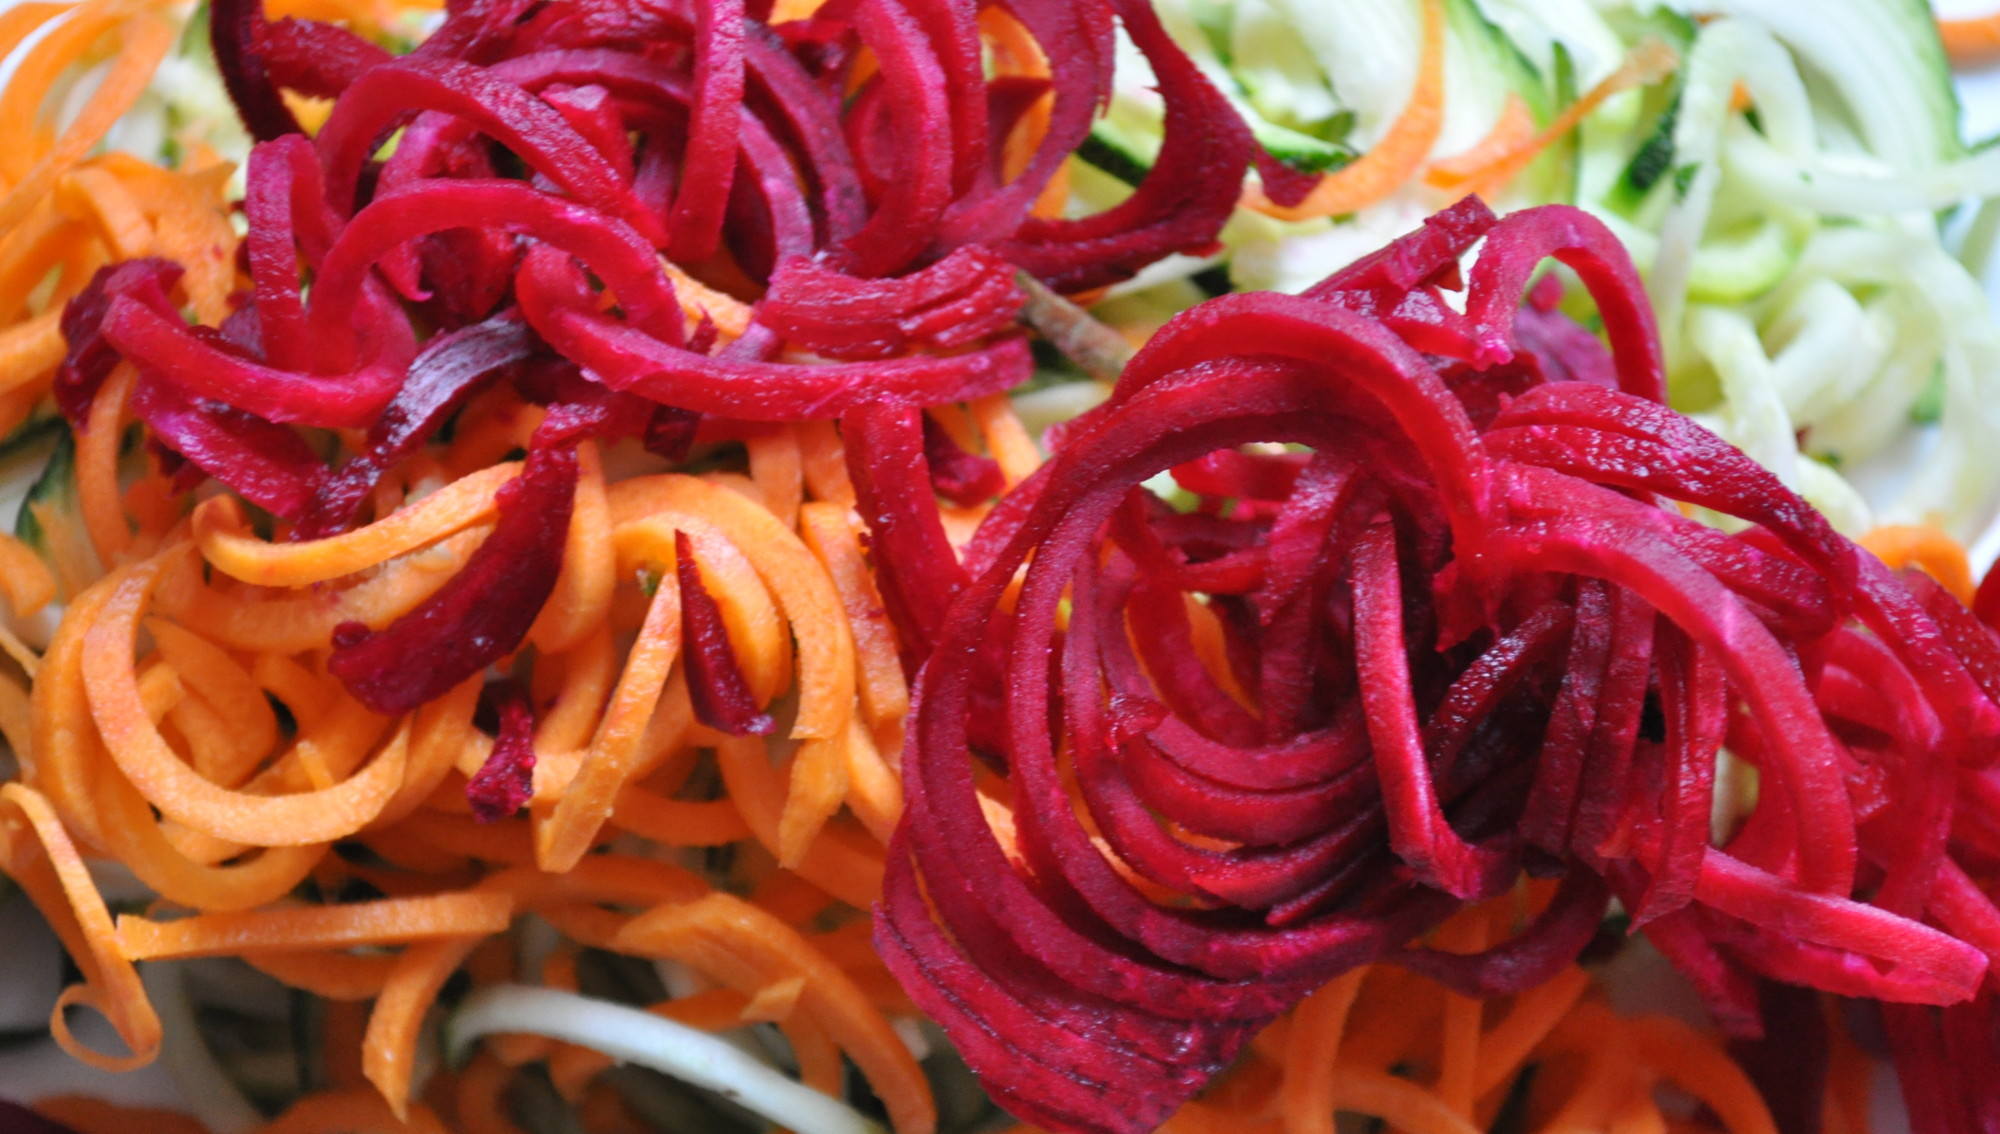 A selection of spiralized vegetables